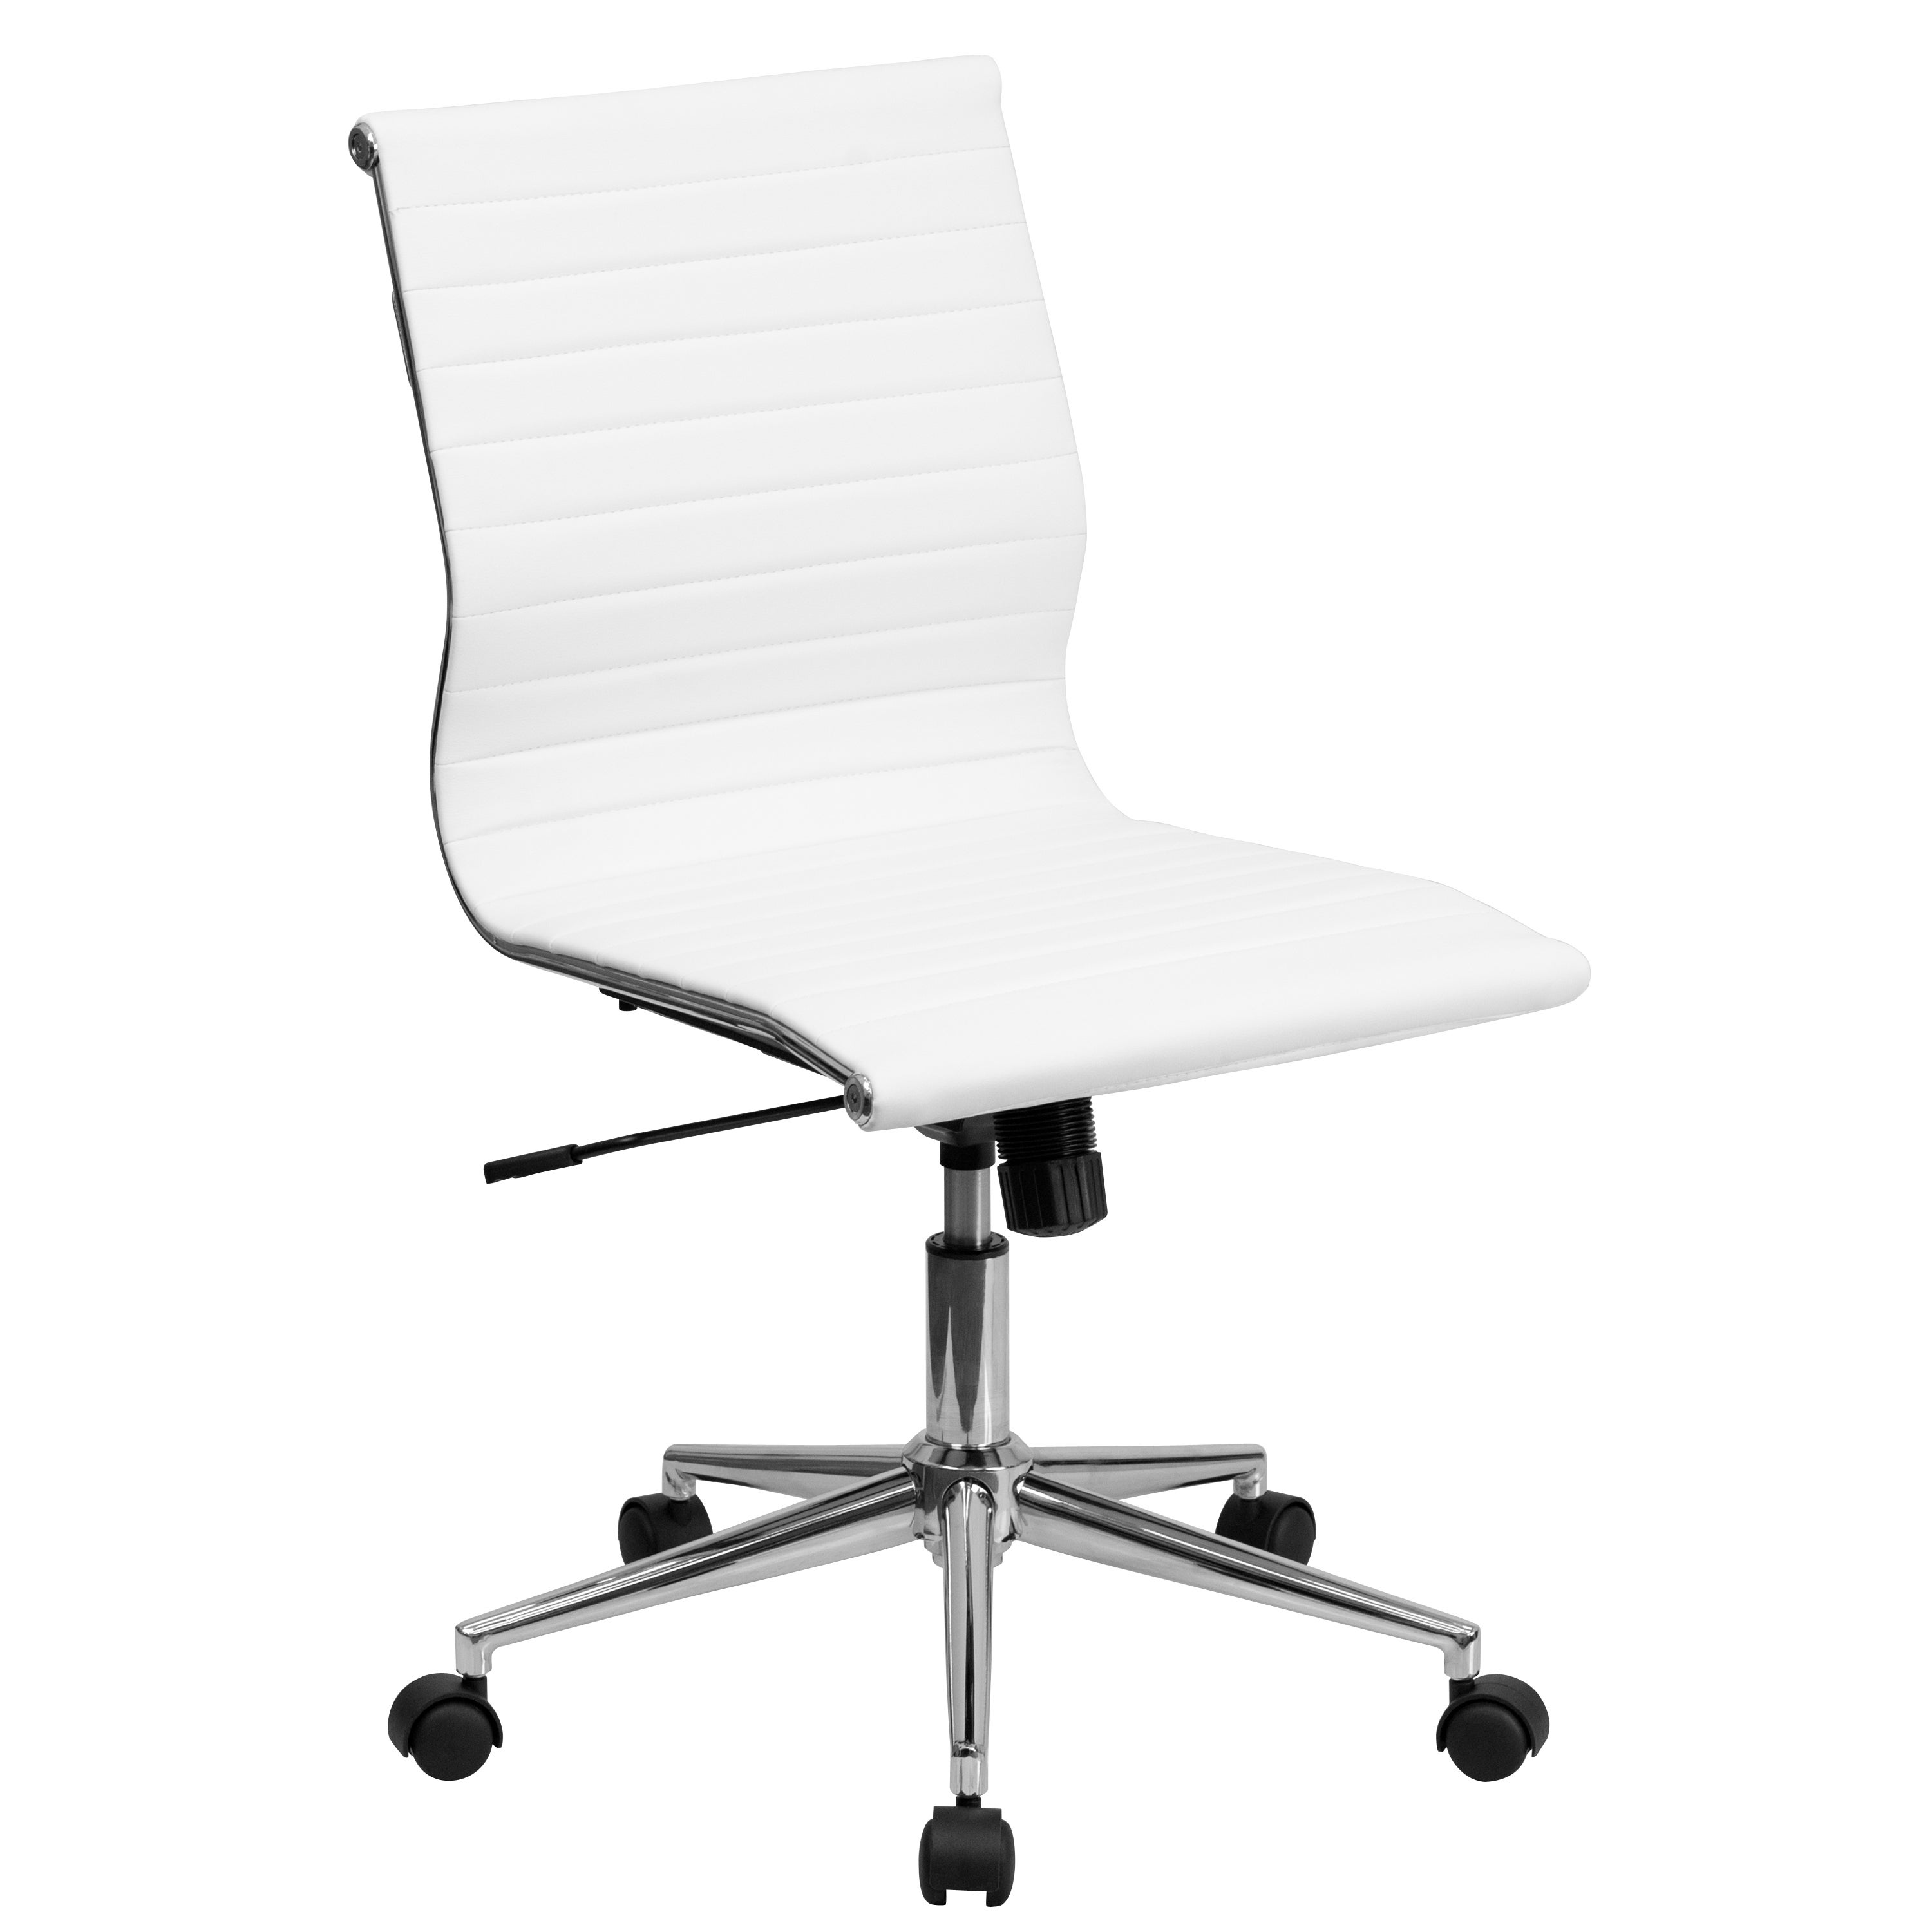 White Office Conference Room Chairs Online At Our Best Home Furniture Deals